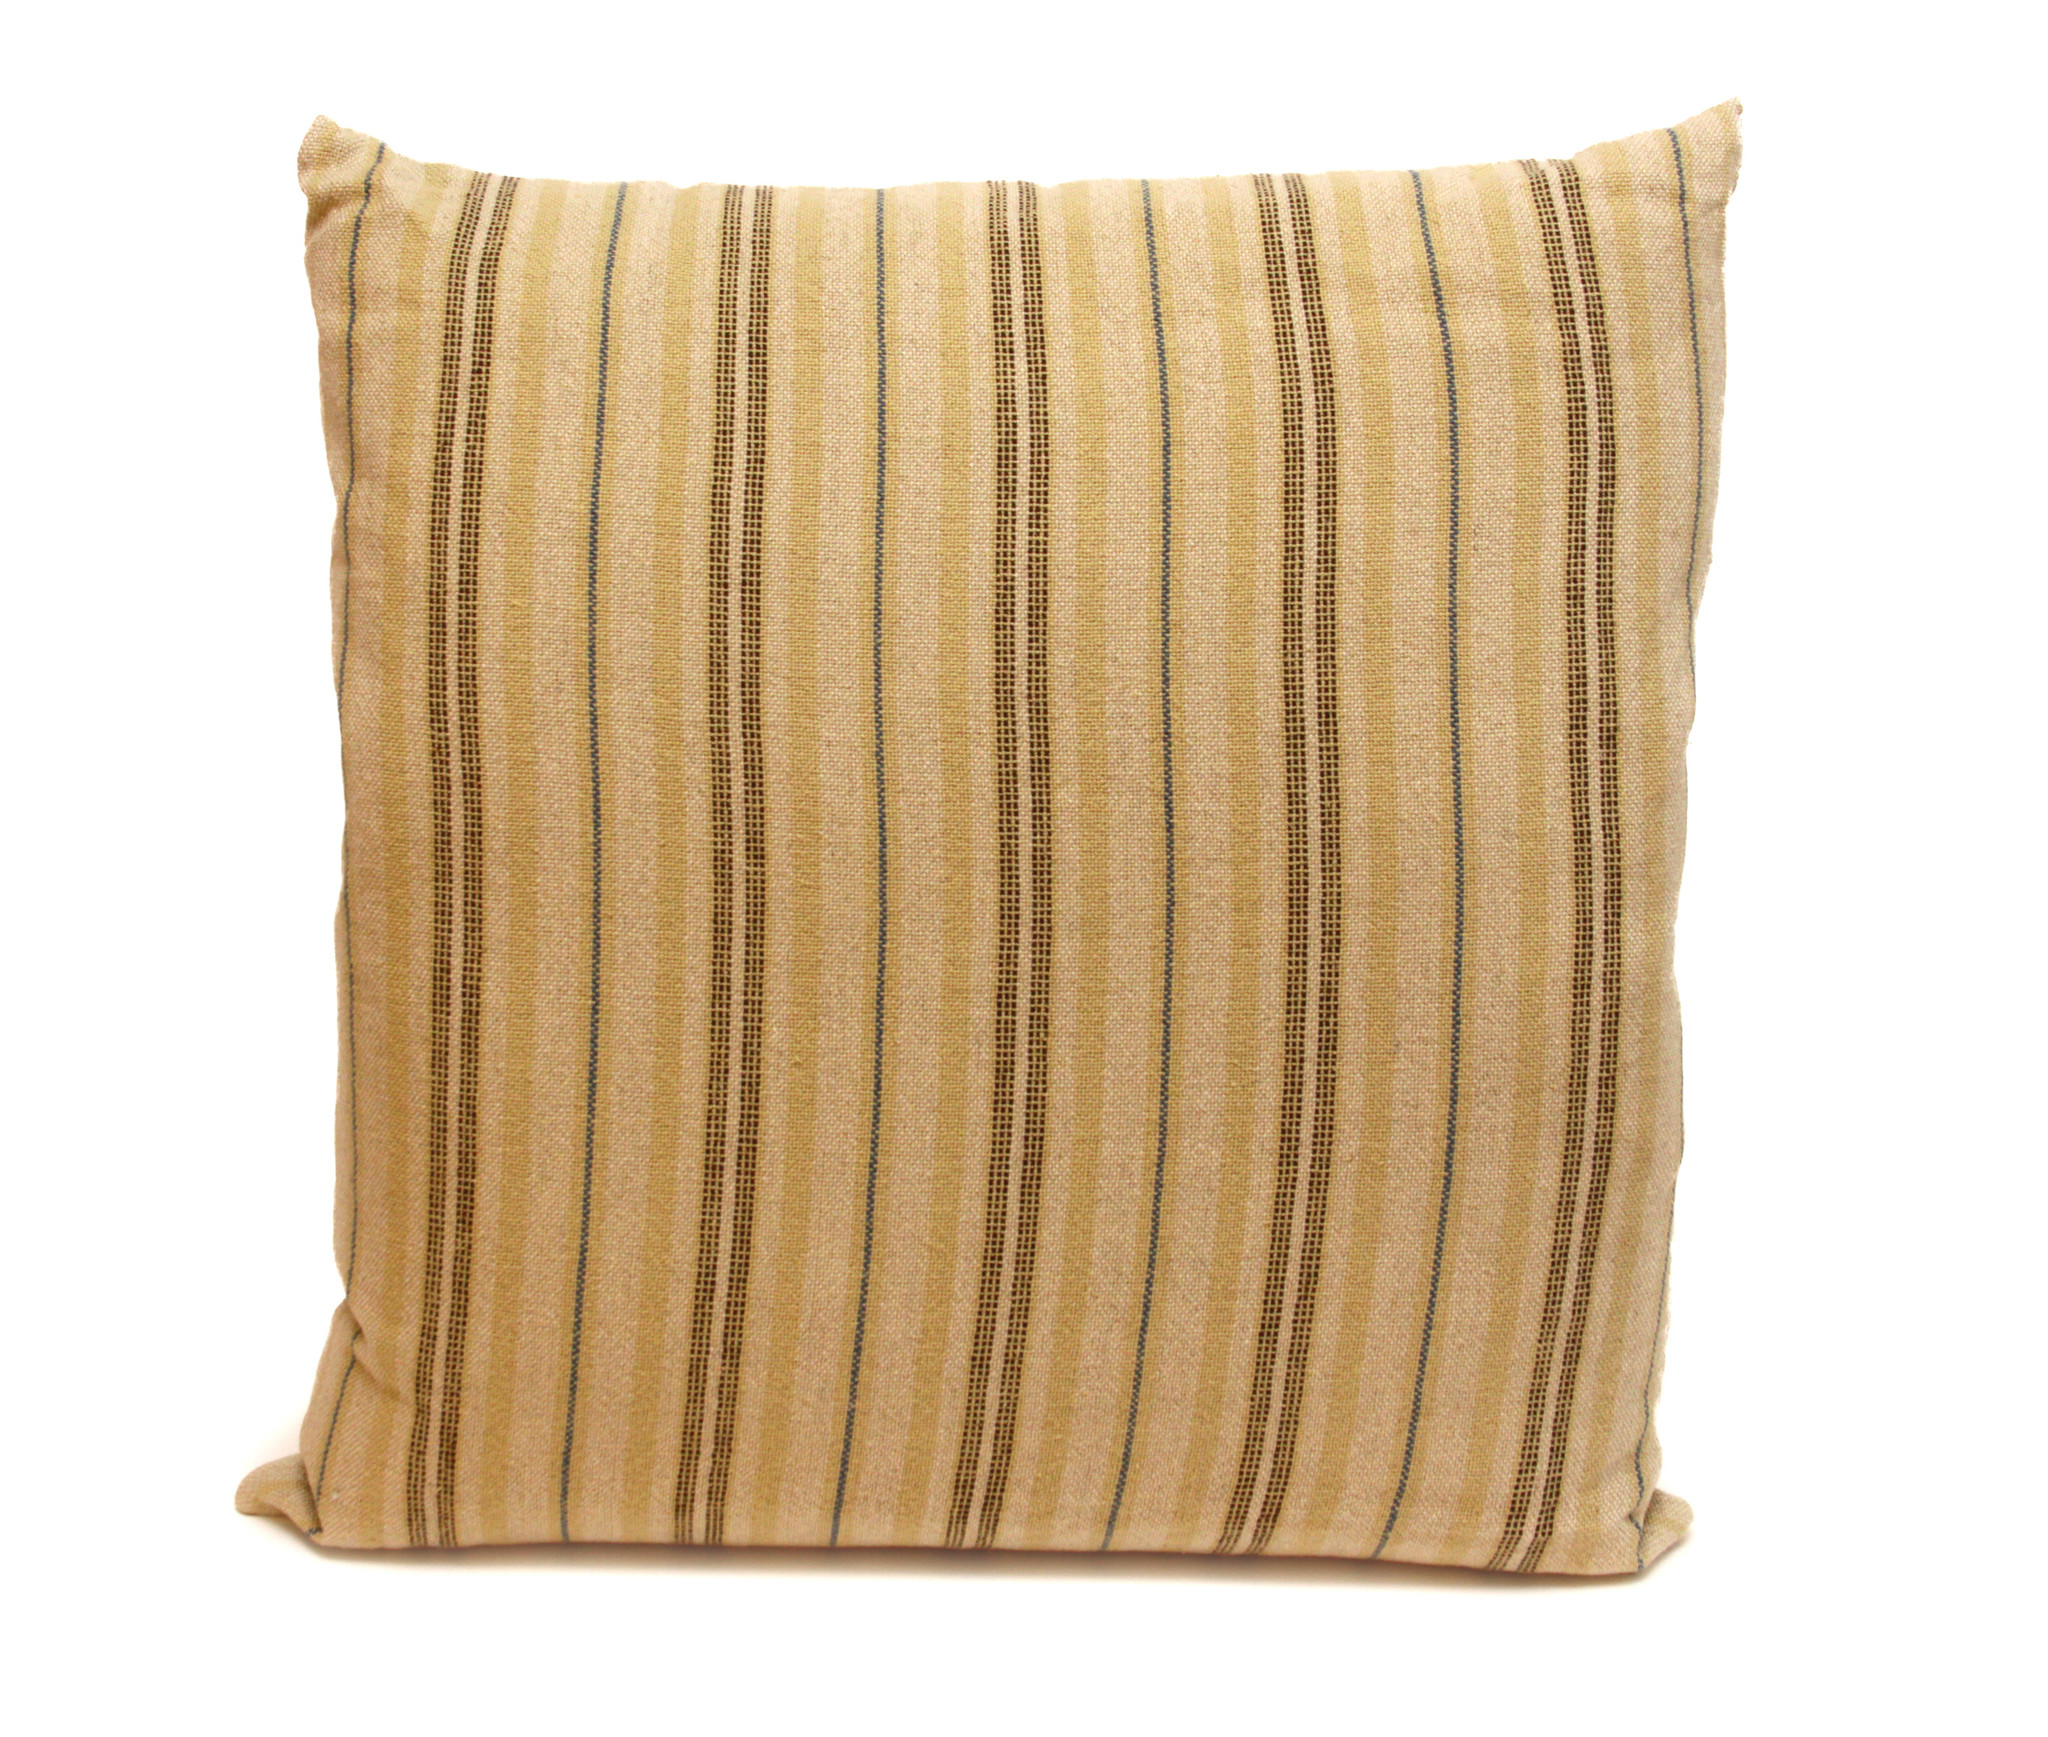 Ticking Striped Square Pillows-2